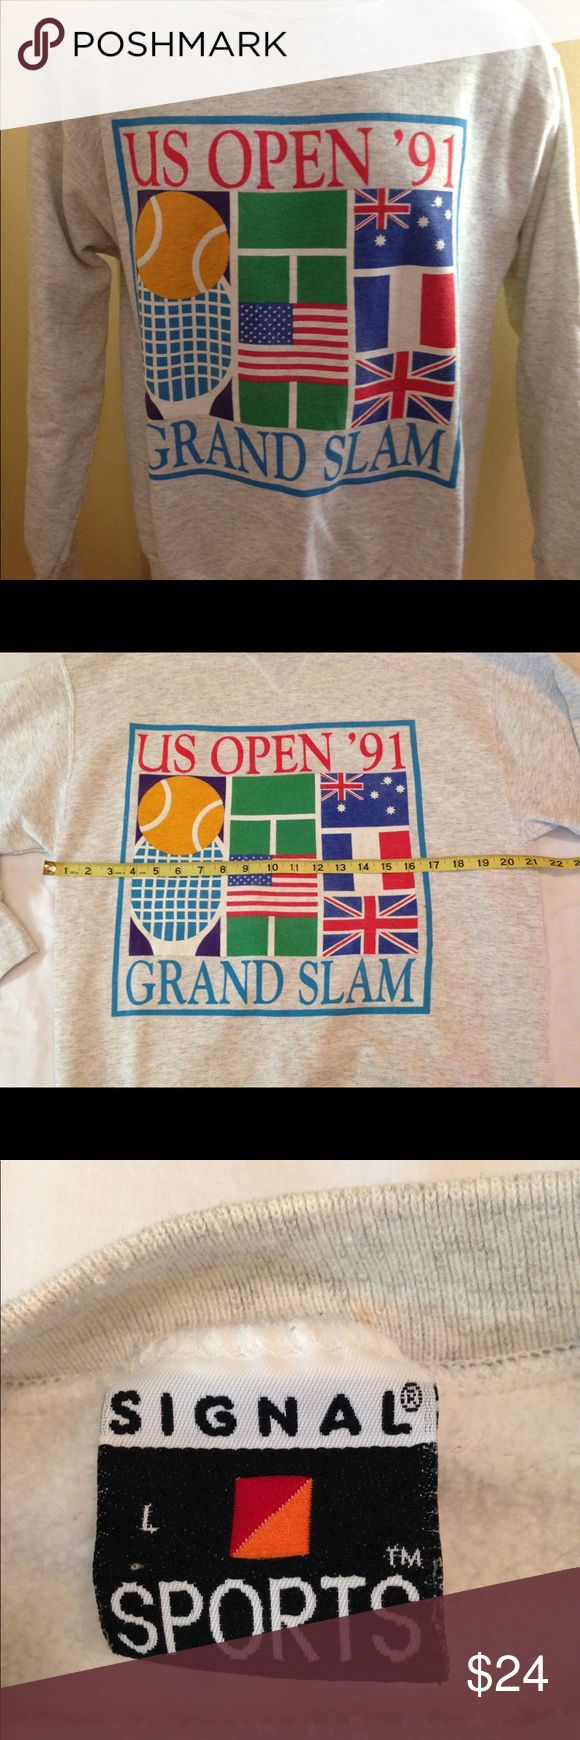 """Vintage US Open '91 Grand Slam Crewneck Sz L Vintage US Open '91 Grand Slam Crewneck Sz L in great preowned condition. Armpit to armpit 21"""" by Signal Made in USA. See pics! Vintage Shirts Sweatshirts & Hoodies"""